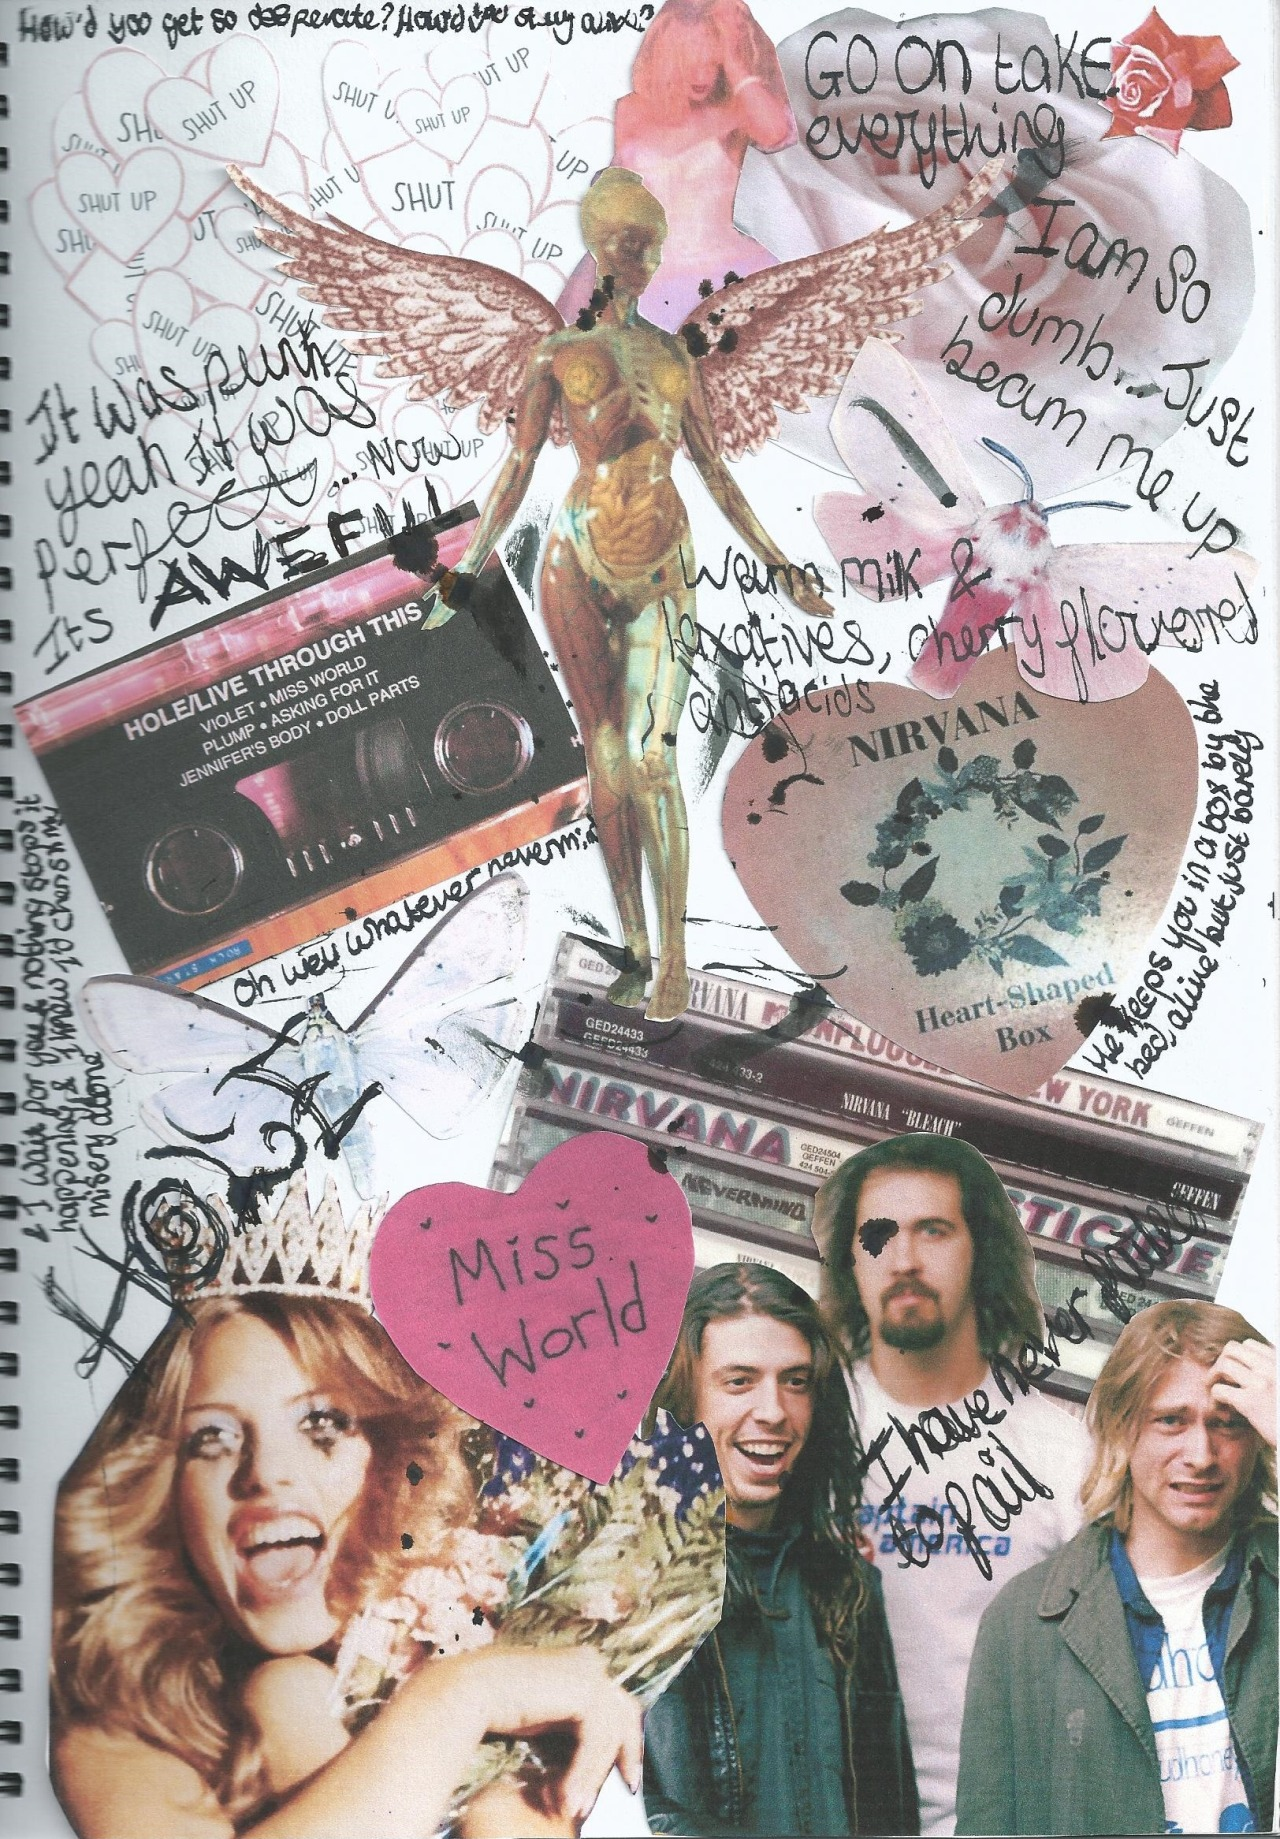 dyingistheultimatehigh:  Nirvana & Hole appreciation collage I did  This is really cool